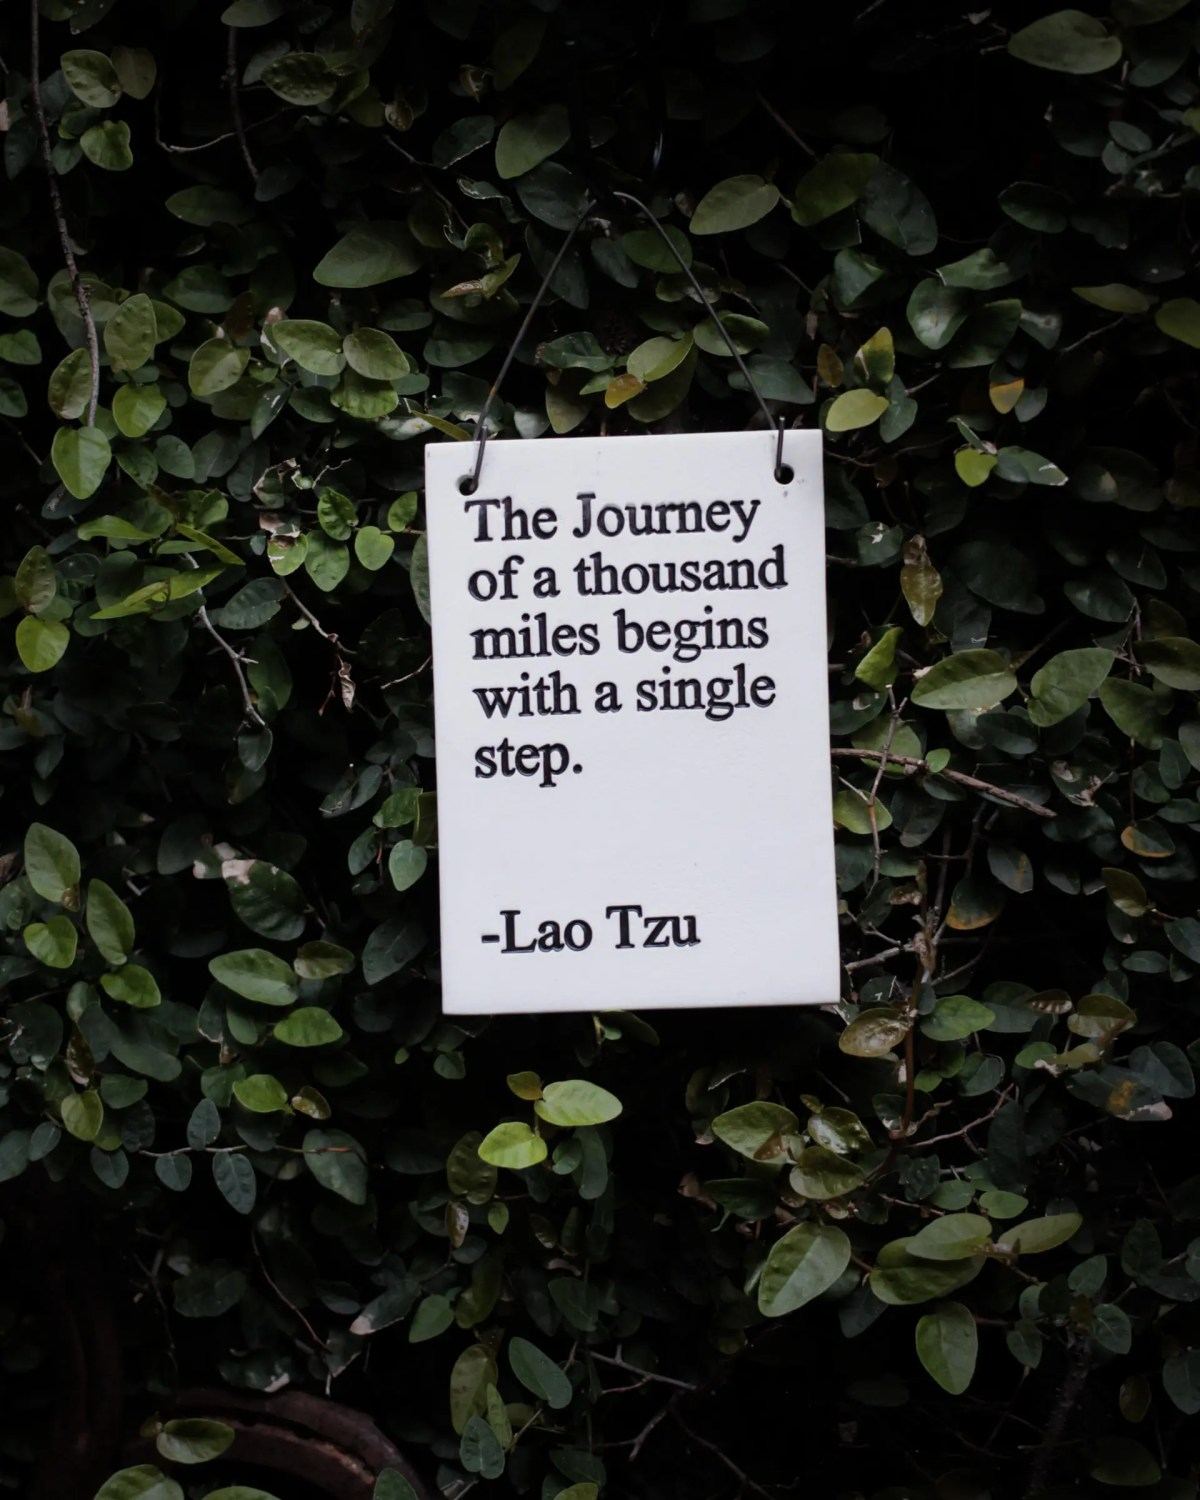 The journey of a thousand miles begin with a single step - Lao Tzu in regards to success